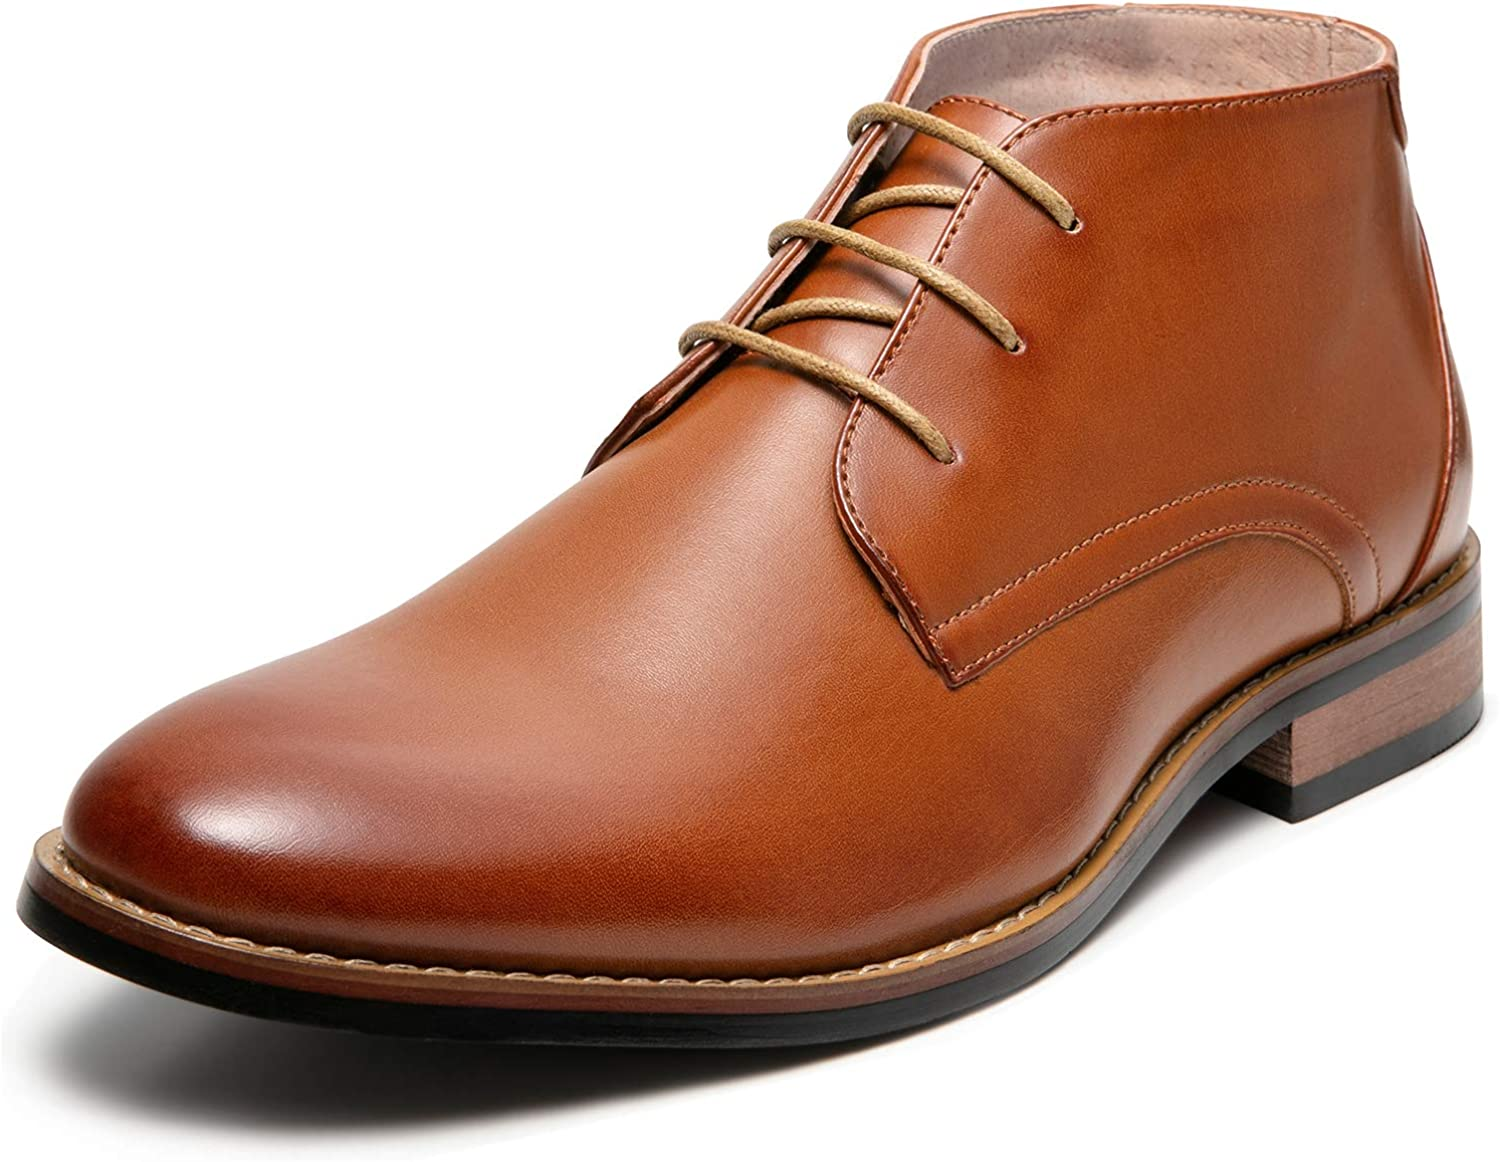 ZRIANG Men's Oxford Dress Leather Boots Lined Toe Special sale item Round Angle Sale SALE% OFF